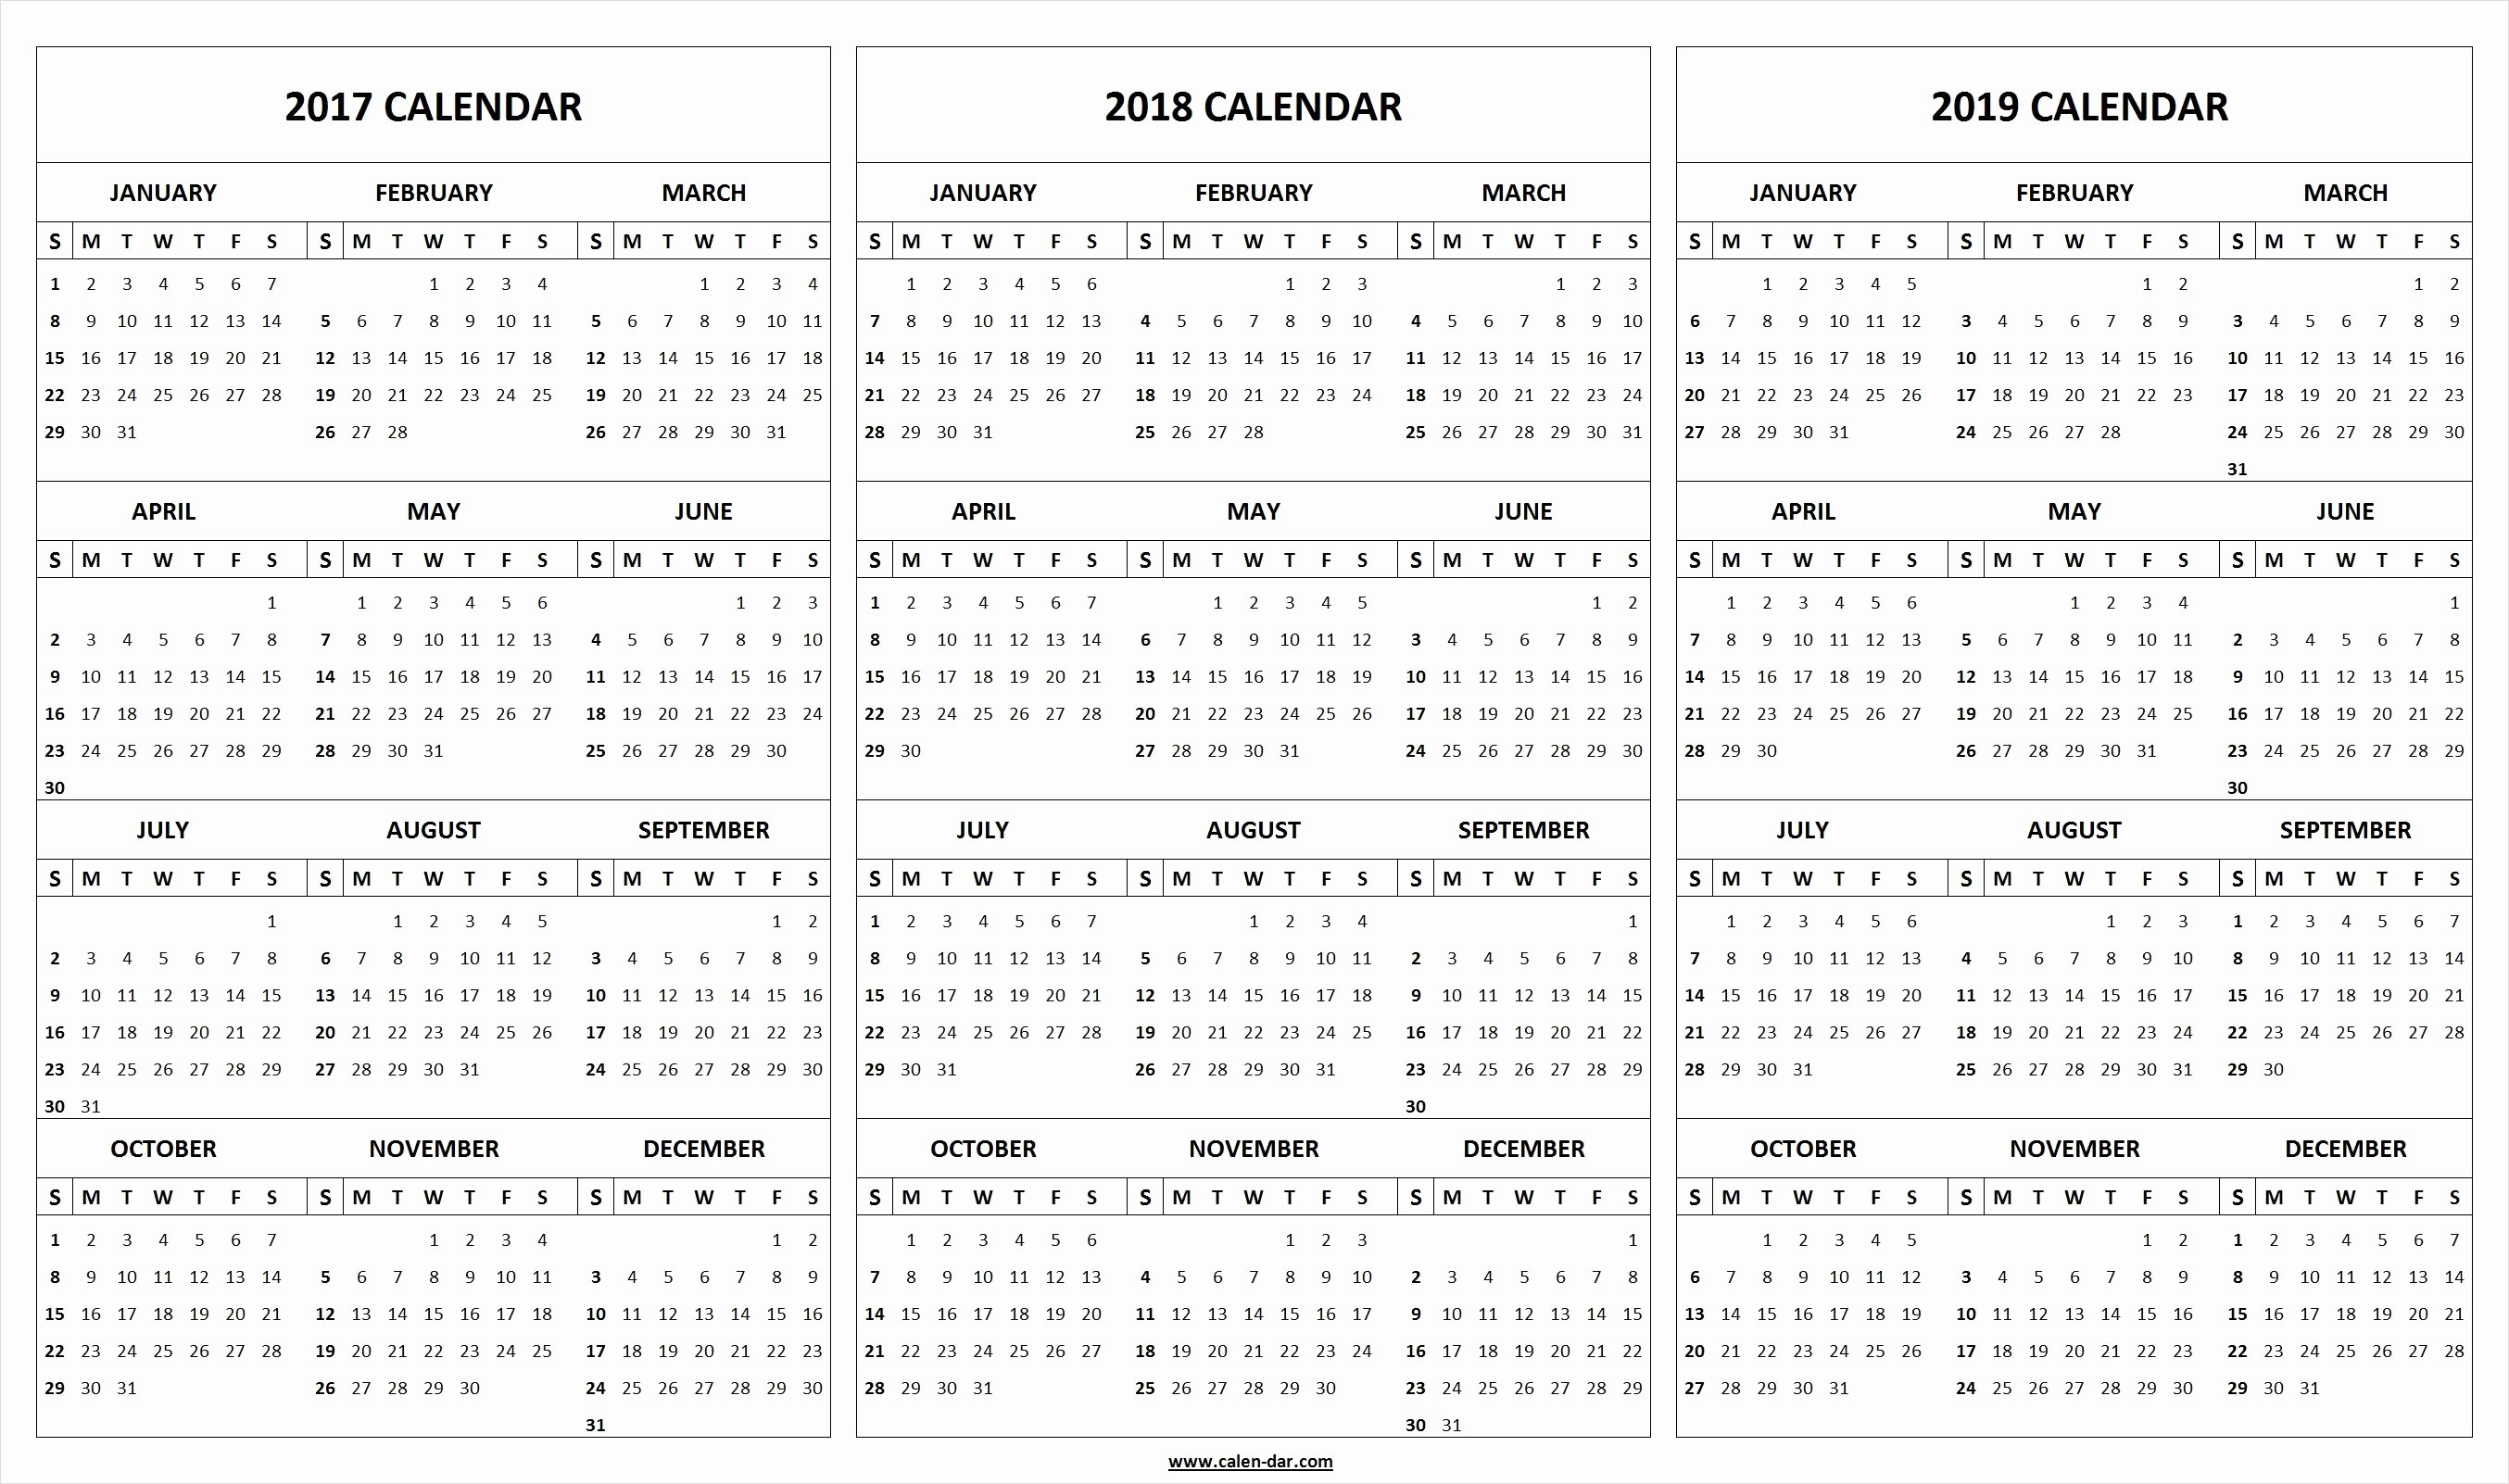 Printable Calendar 2018 and 2019 Best Of Get Free Blank Printable 2017 2018 2019 Calendar Template